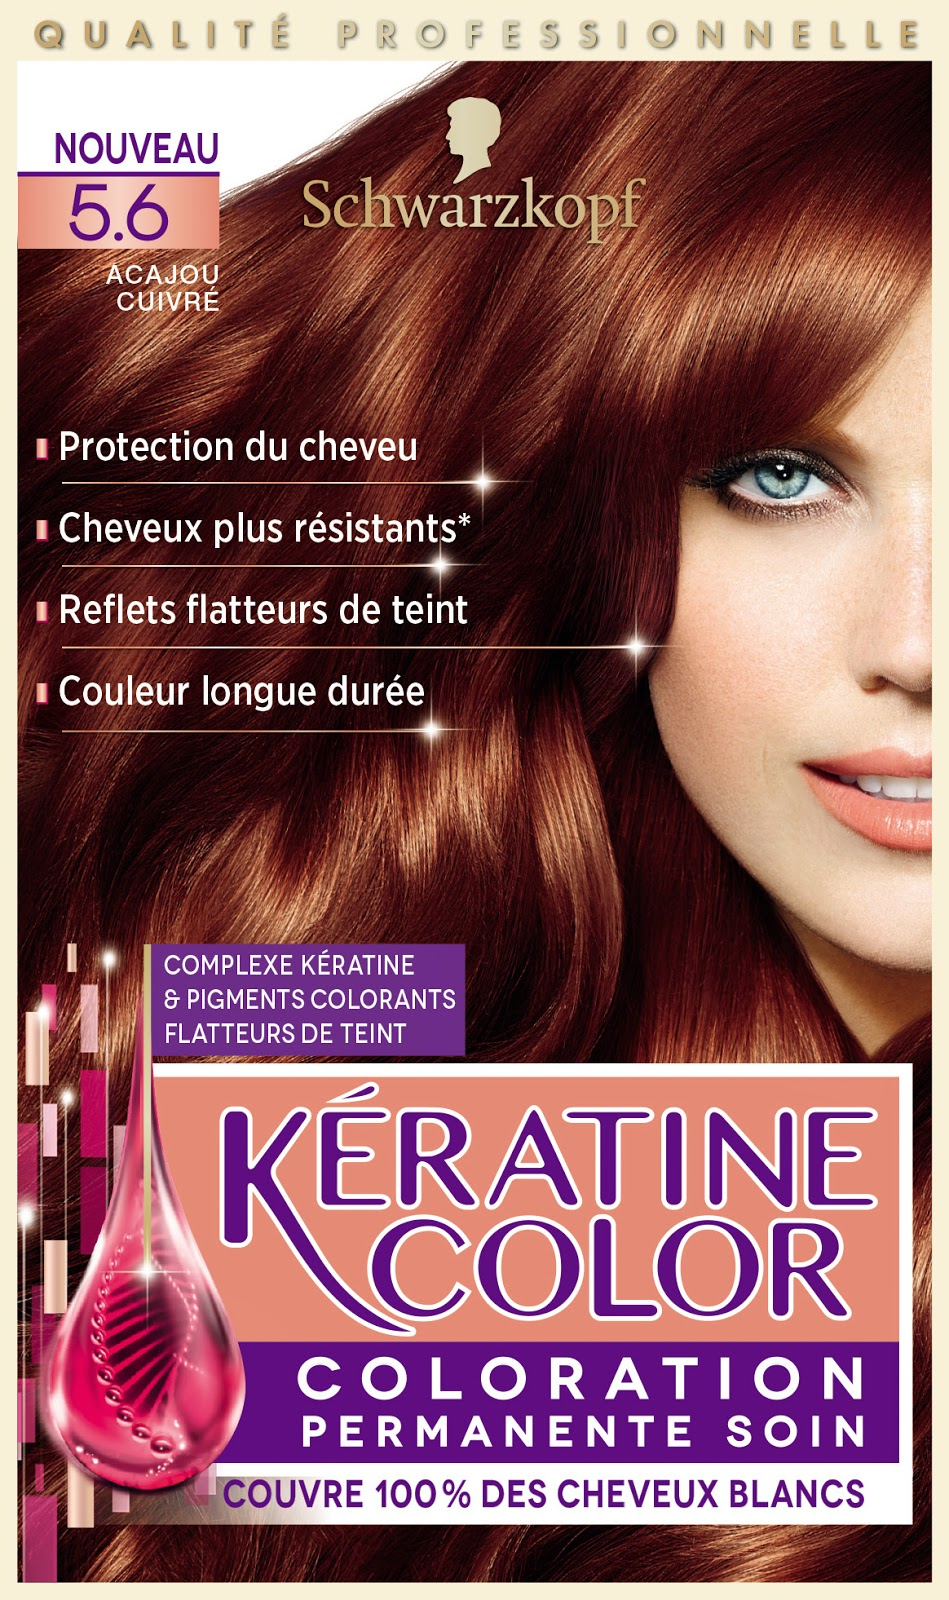 schwarzkopf coloration cheveux KERATINE COLOR